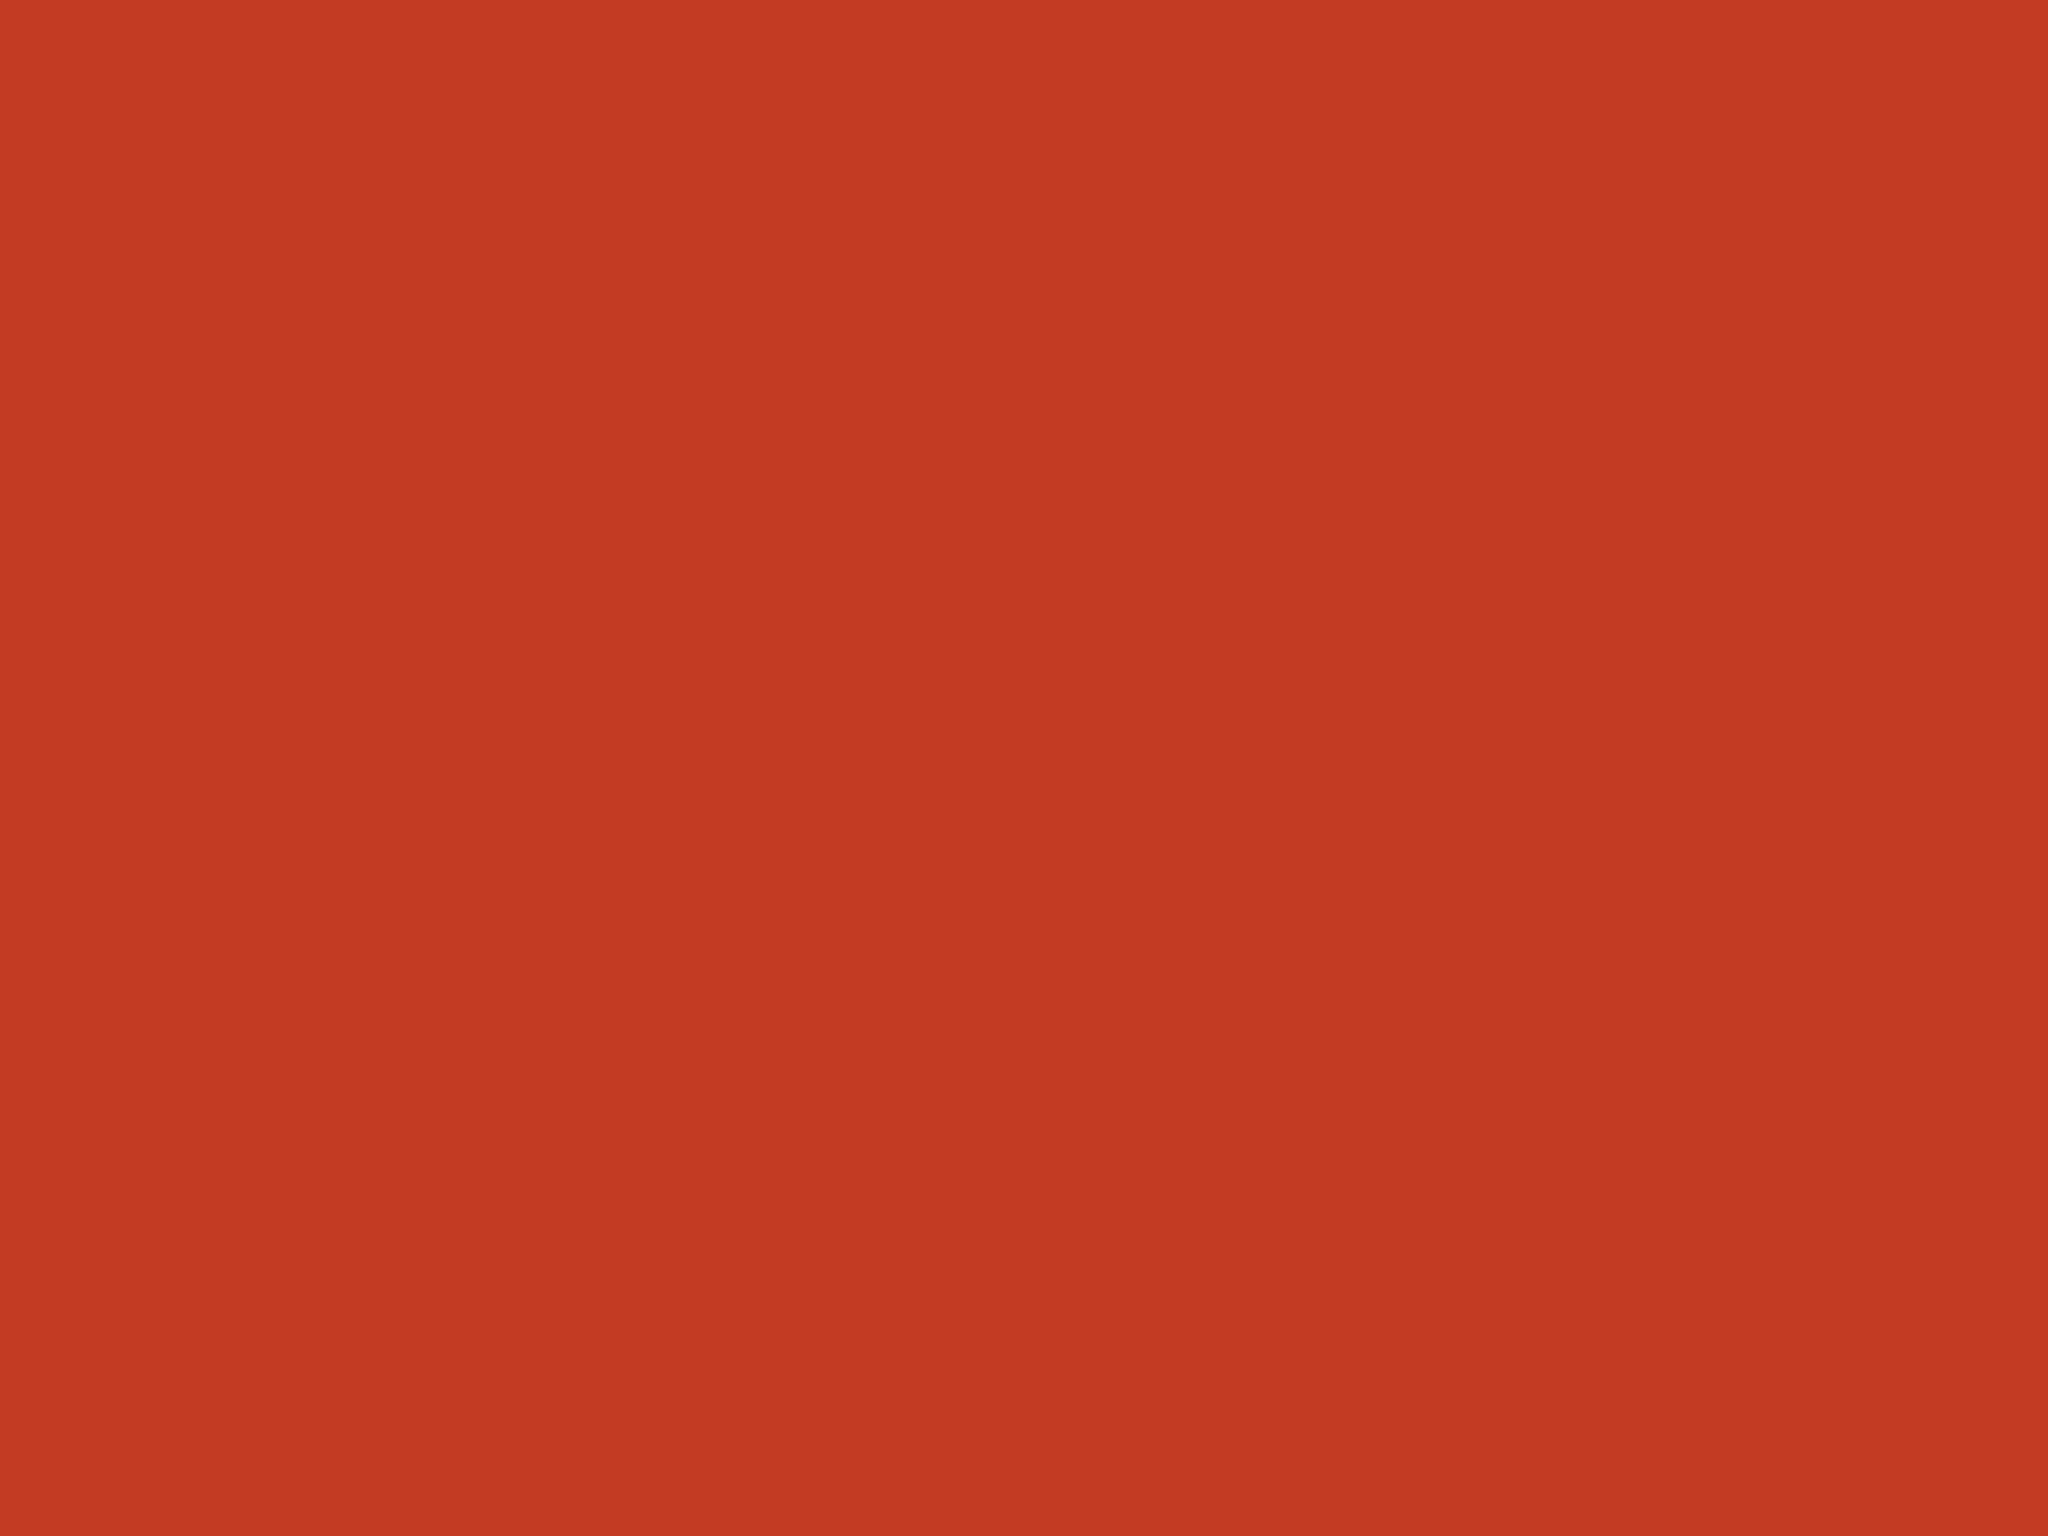 2048x1536 Dark Pastel Red Solid Color Background